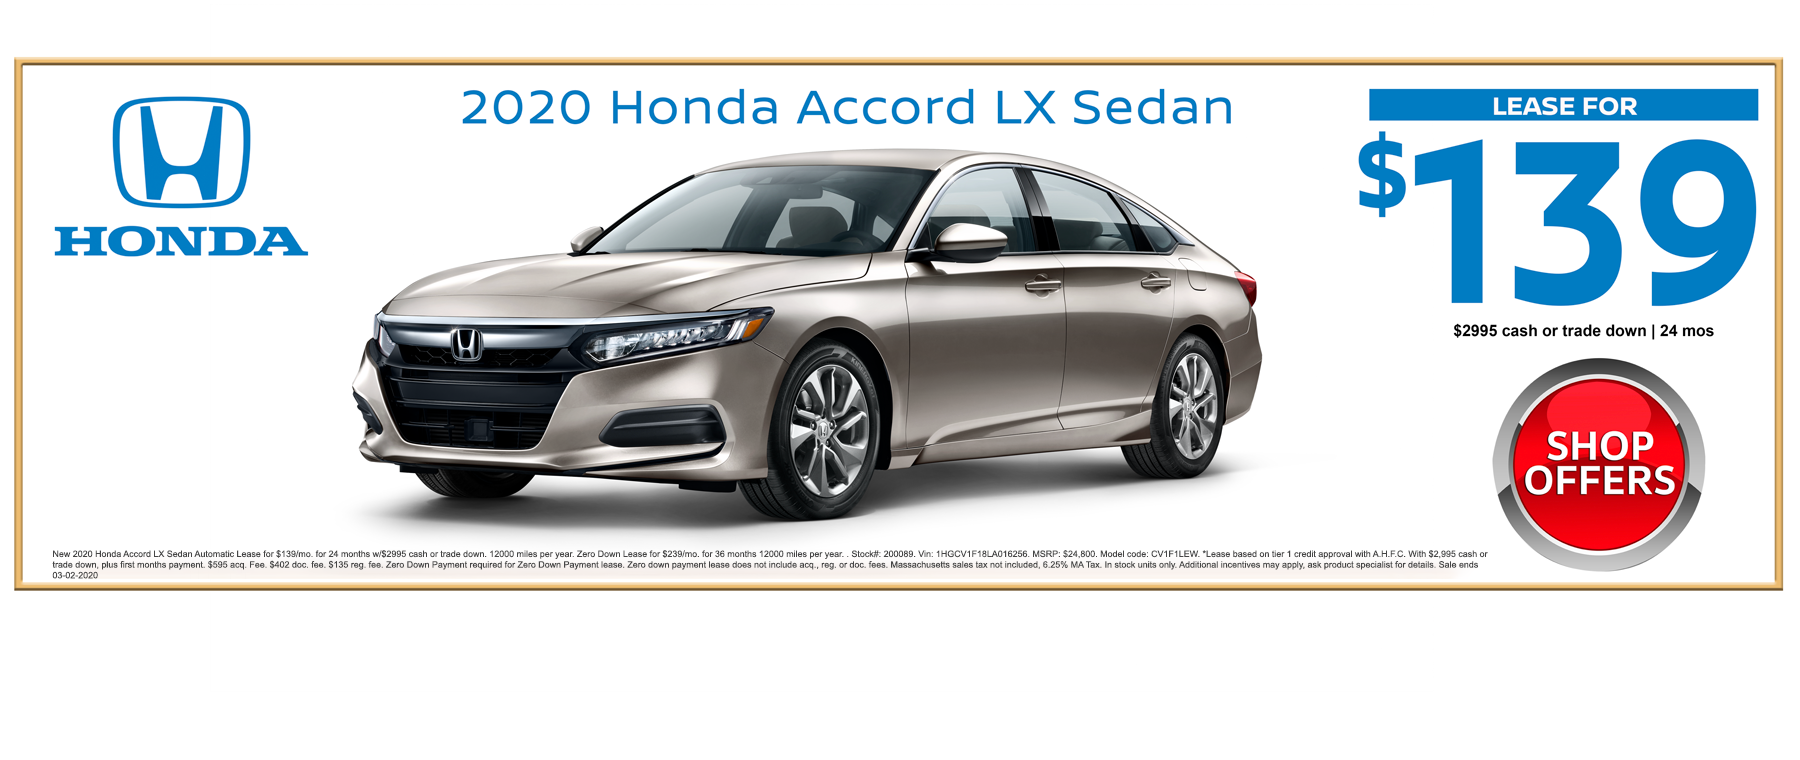 2020 Honda Accord LX Sedan February Lease Special at Kelly Honda in Lynn, MA